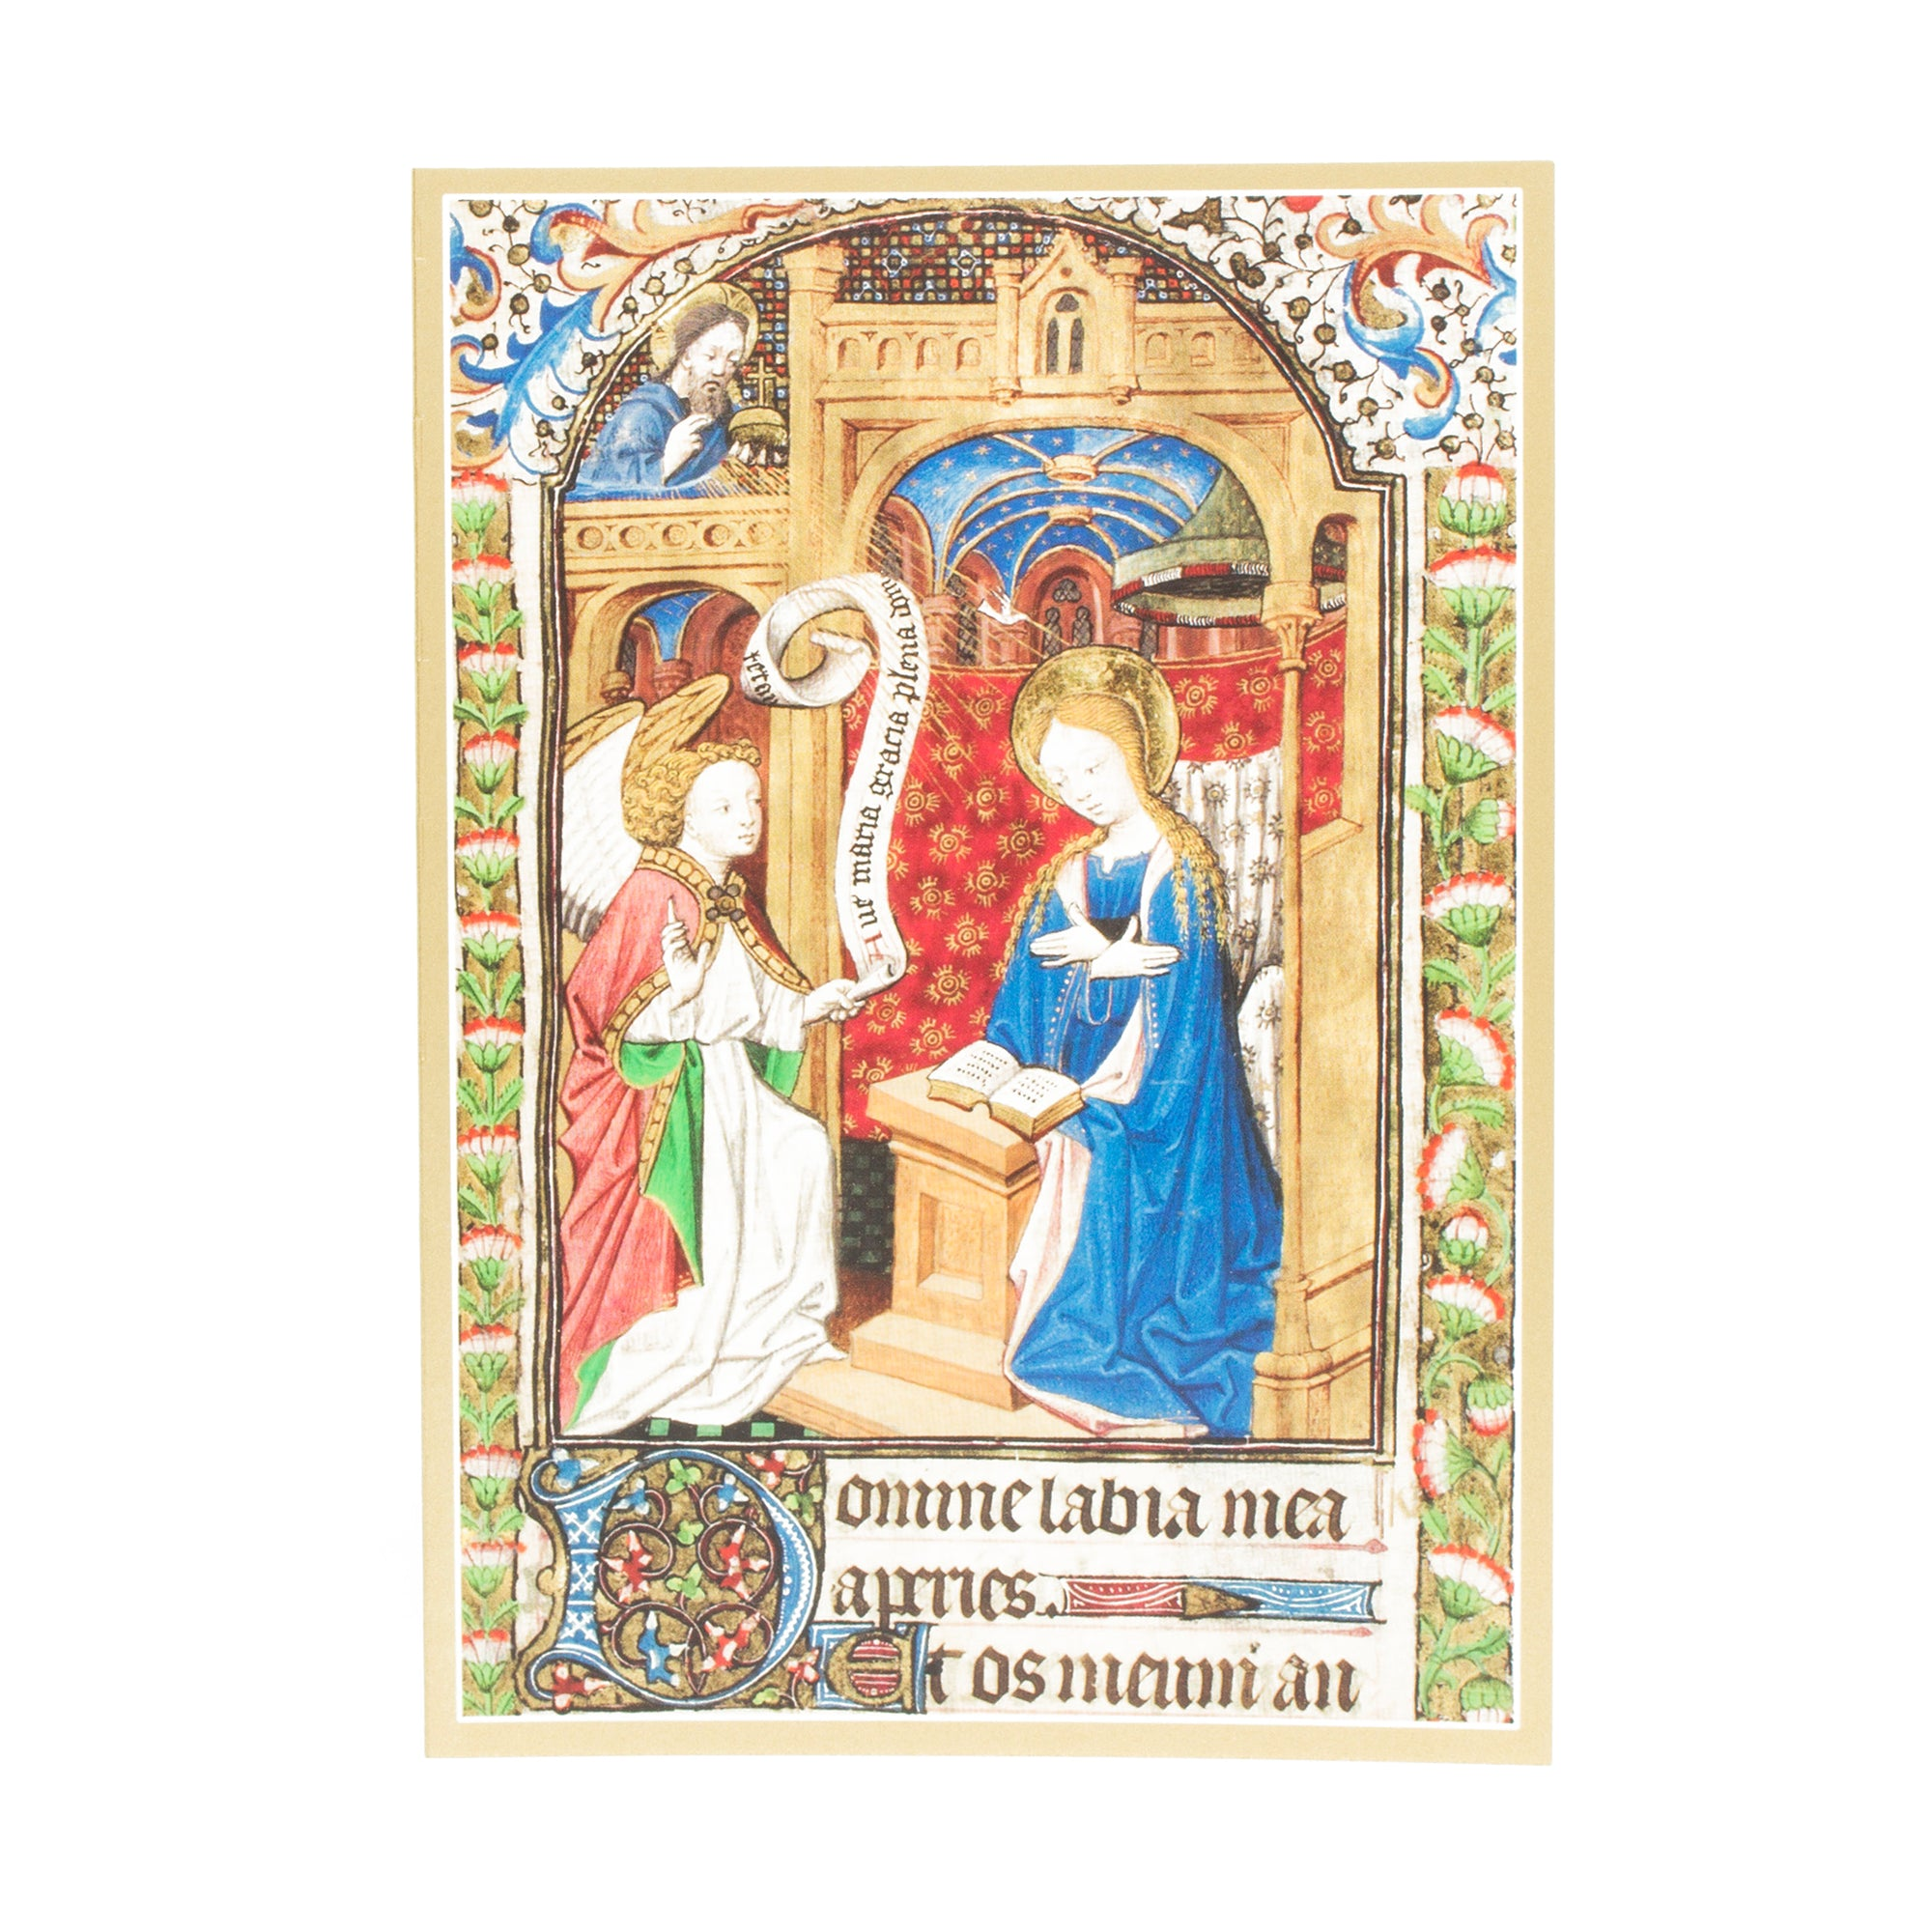 Getty Small Boxed Christmas Cards - Book of Hours - The Getty Store